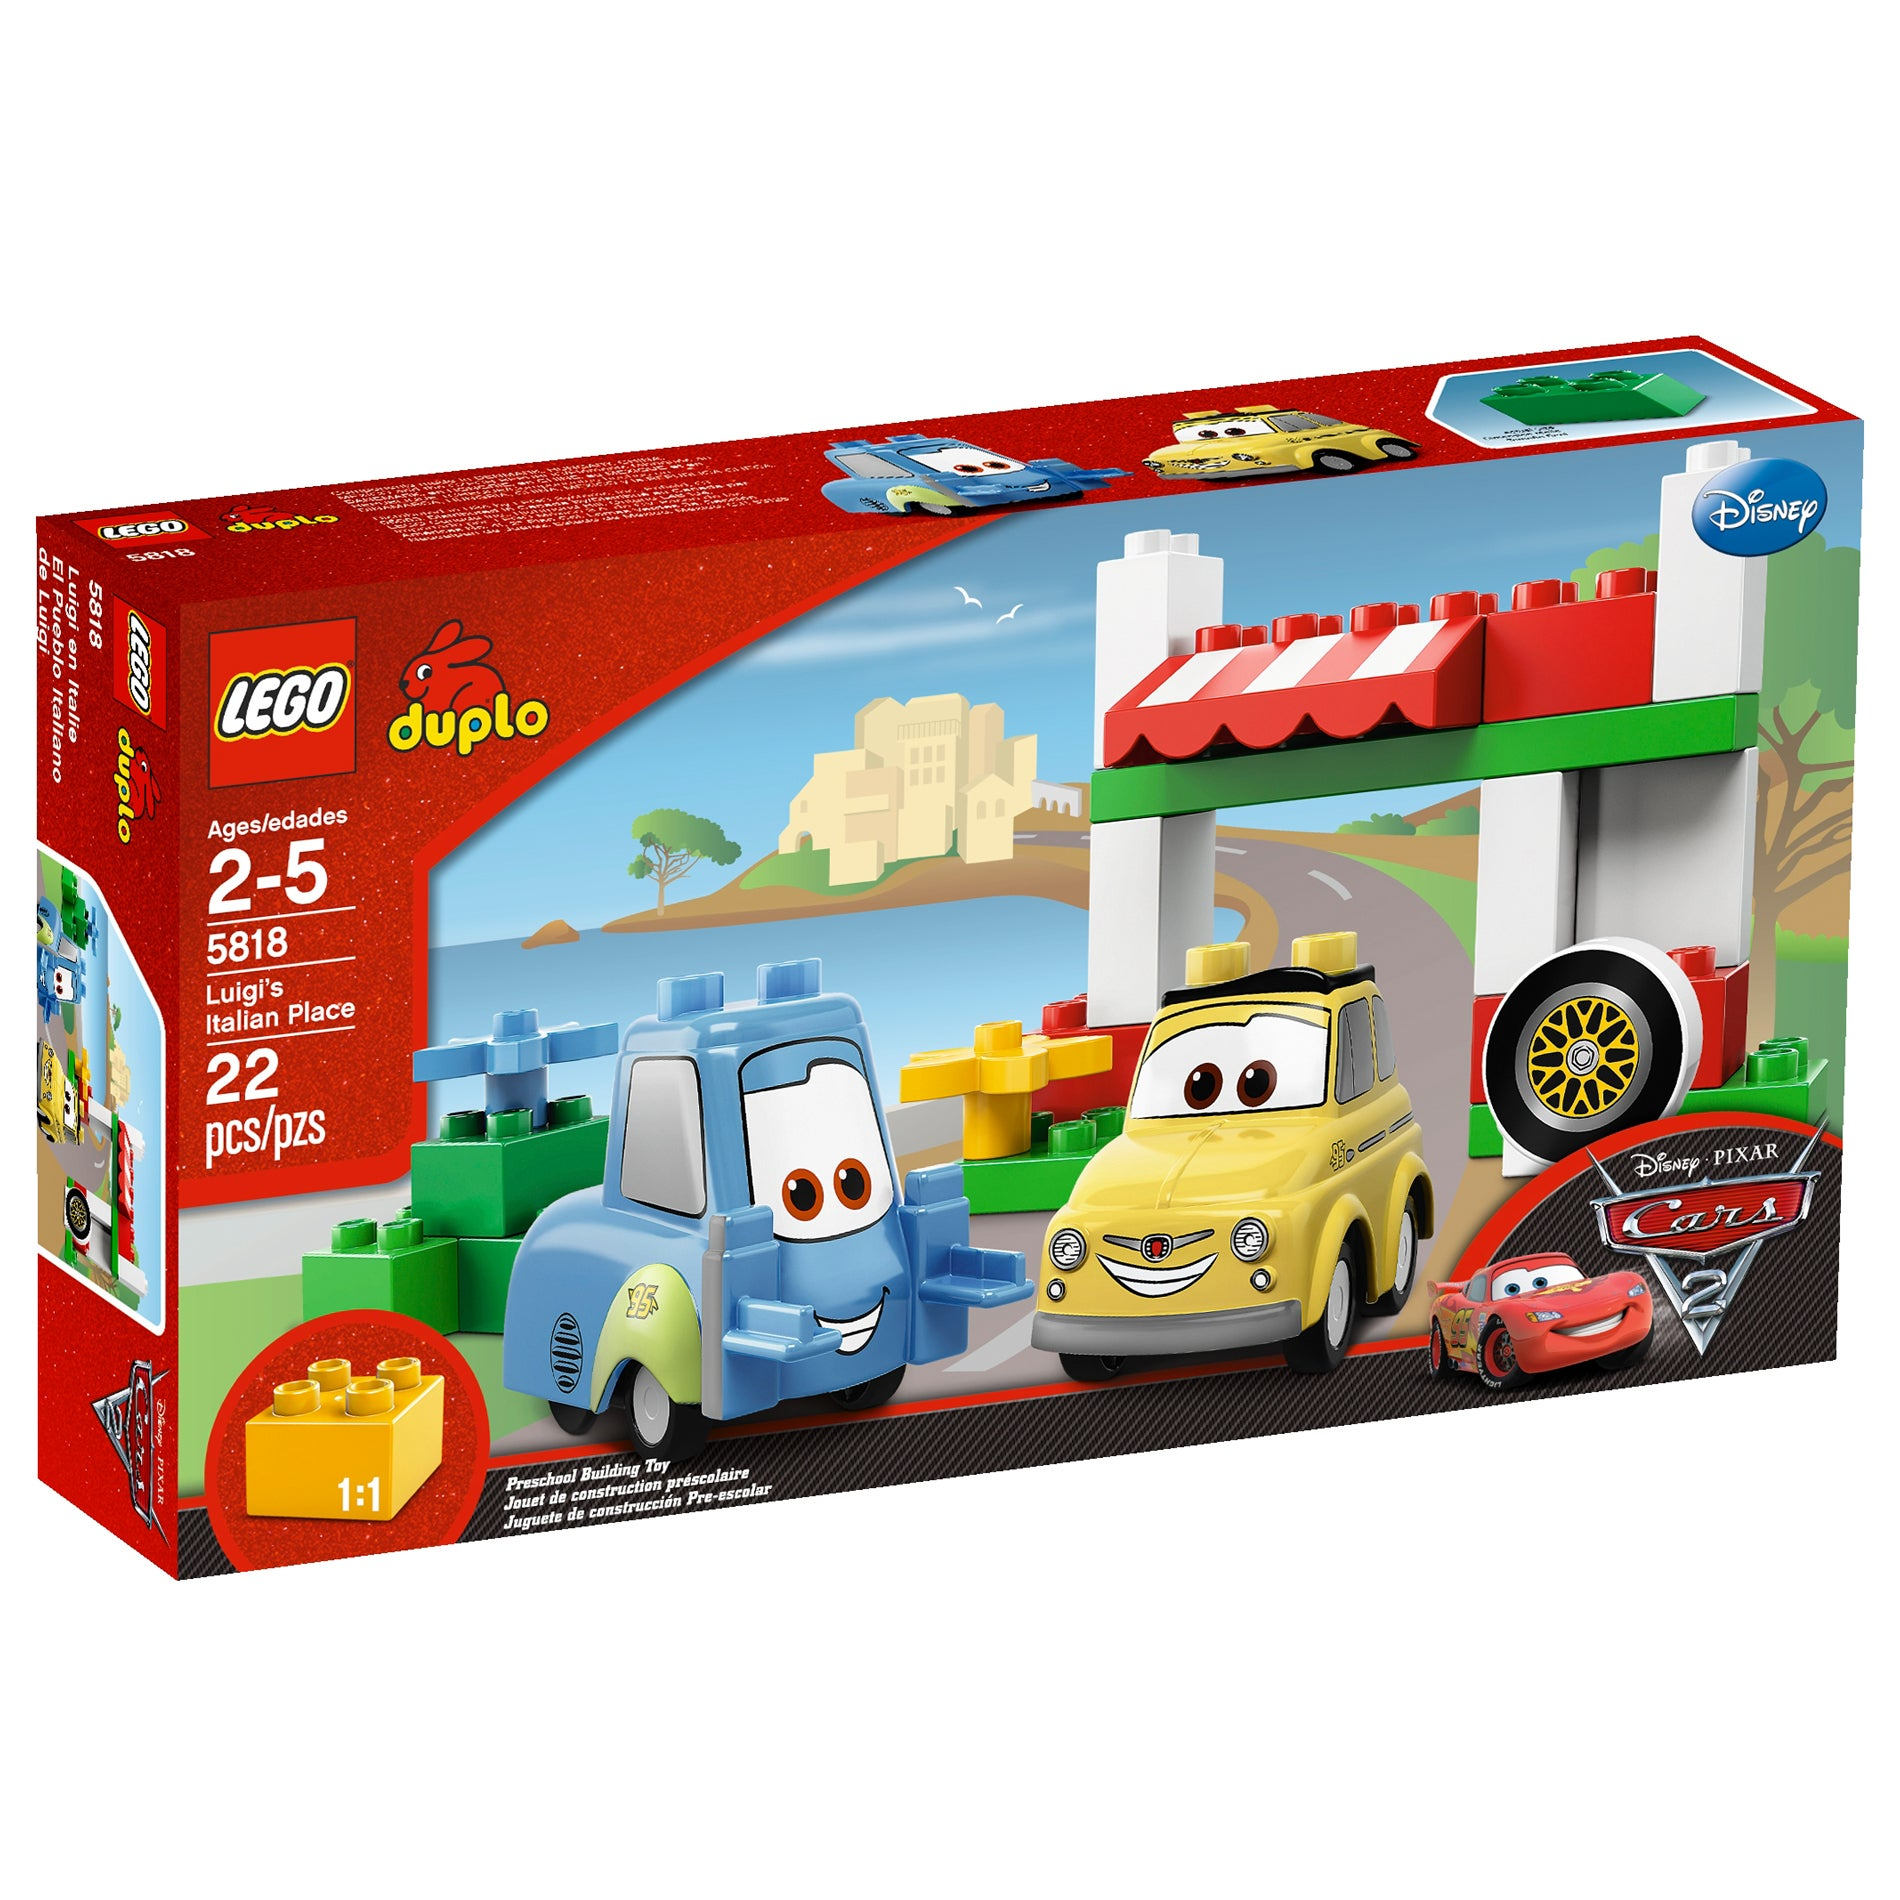 LEGO Cars Luigis Italian Place Toy Set